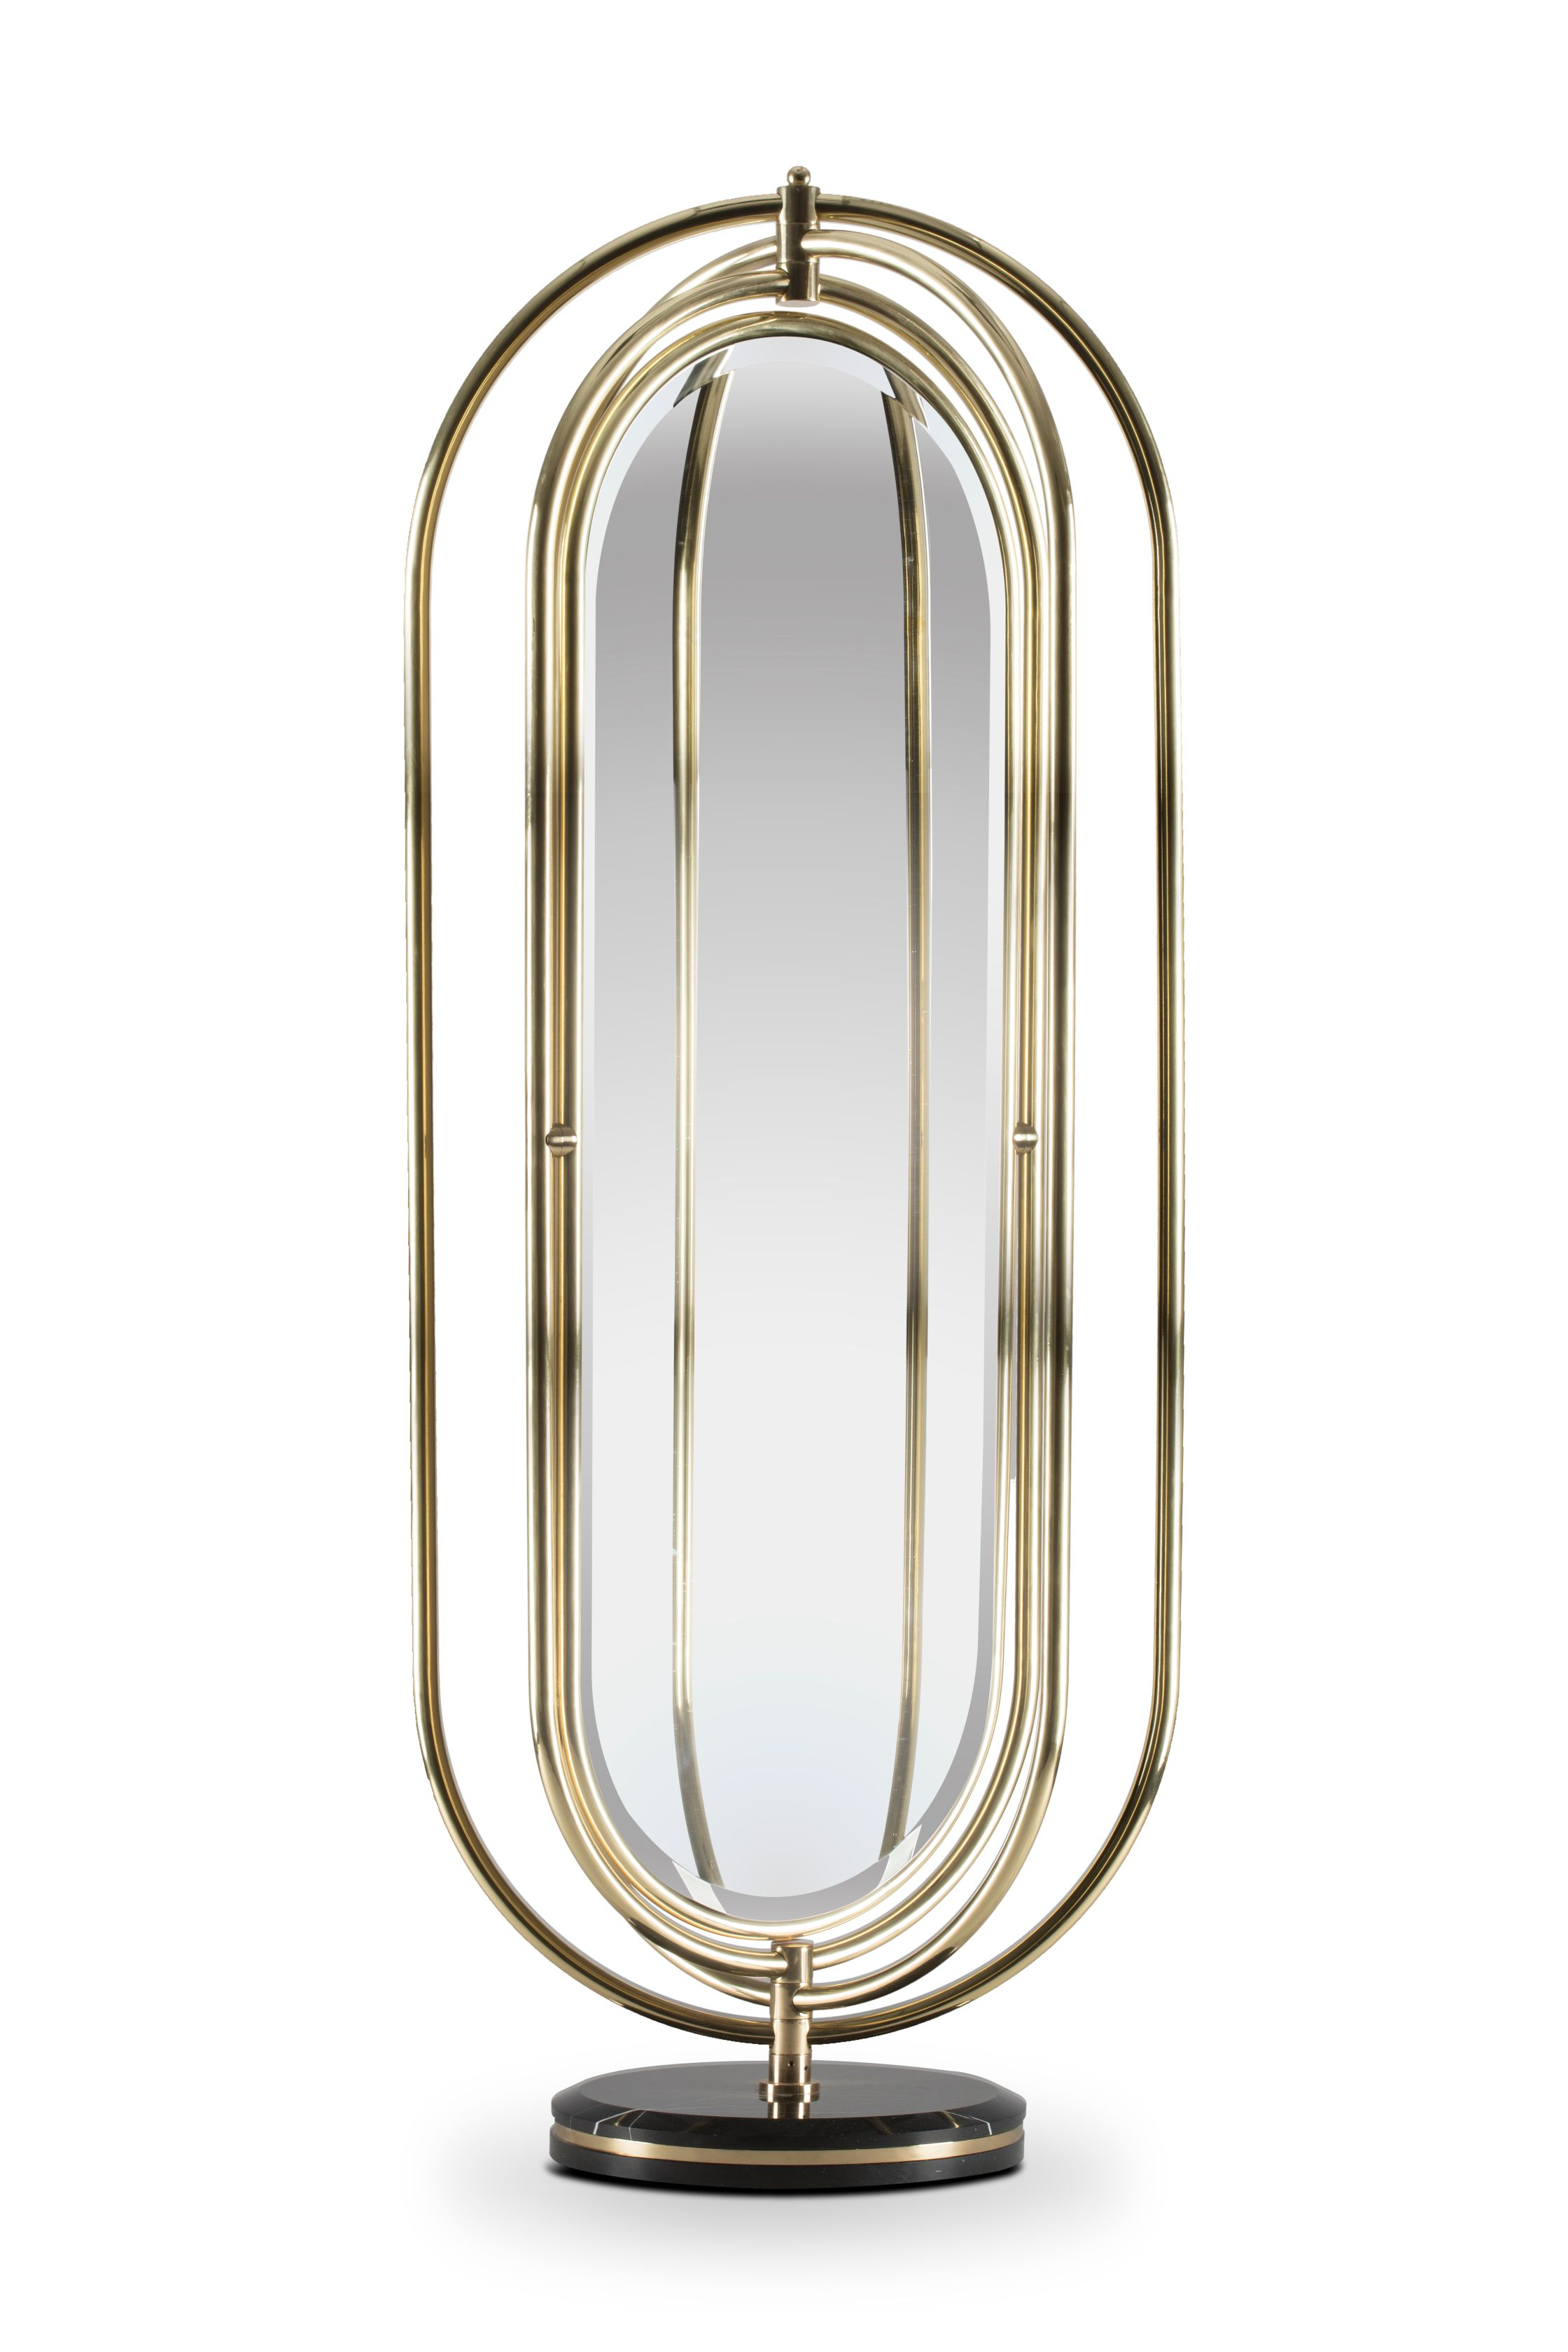 Bathroom mirrors inspired by the flavian amphitheatre the for Bathroom floor mirror